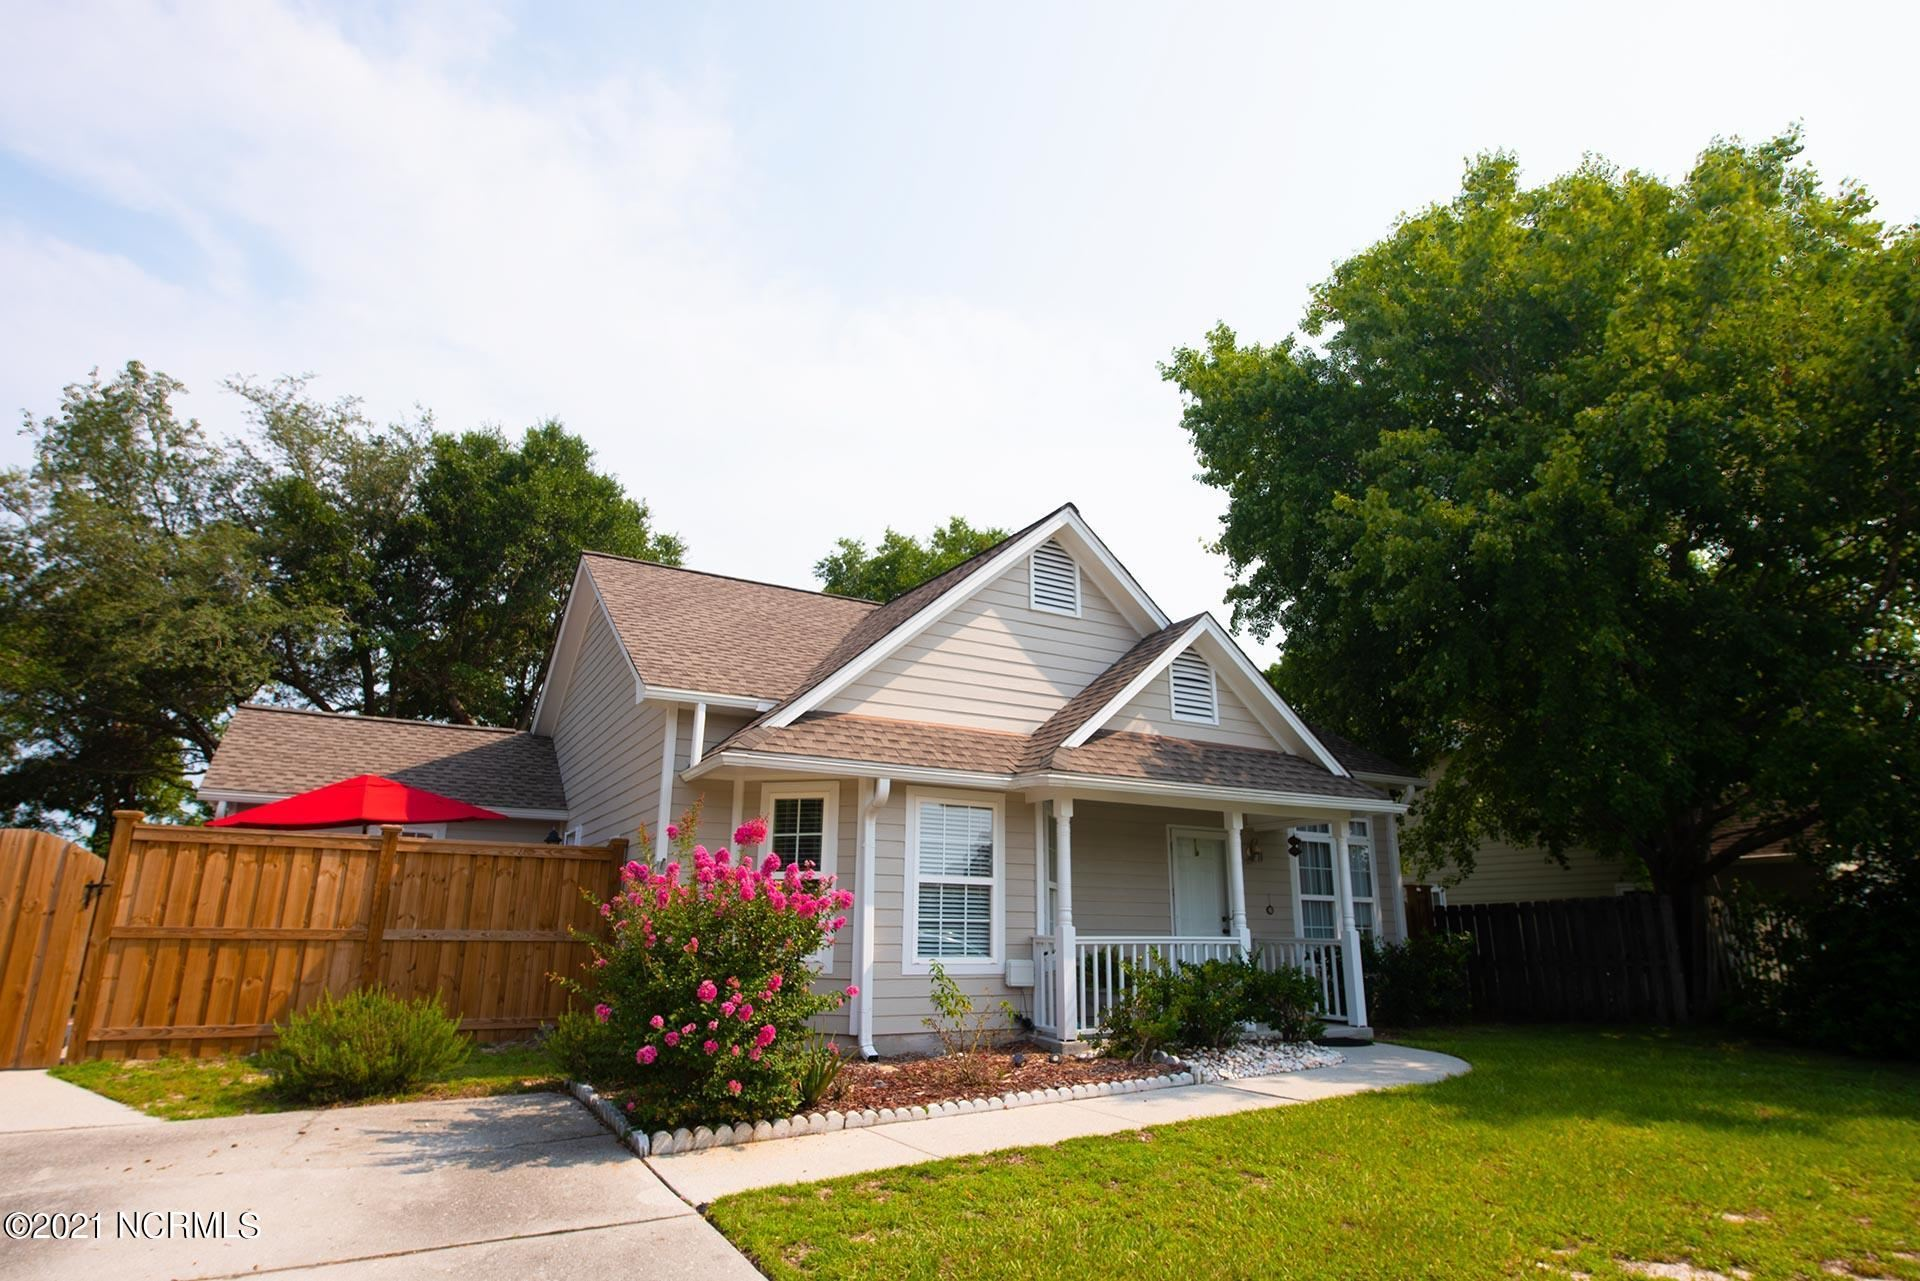 Photo of 1021 Lacewood Court, Wilmington, NC 28409 (MLS # 100284276)